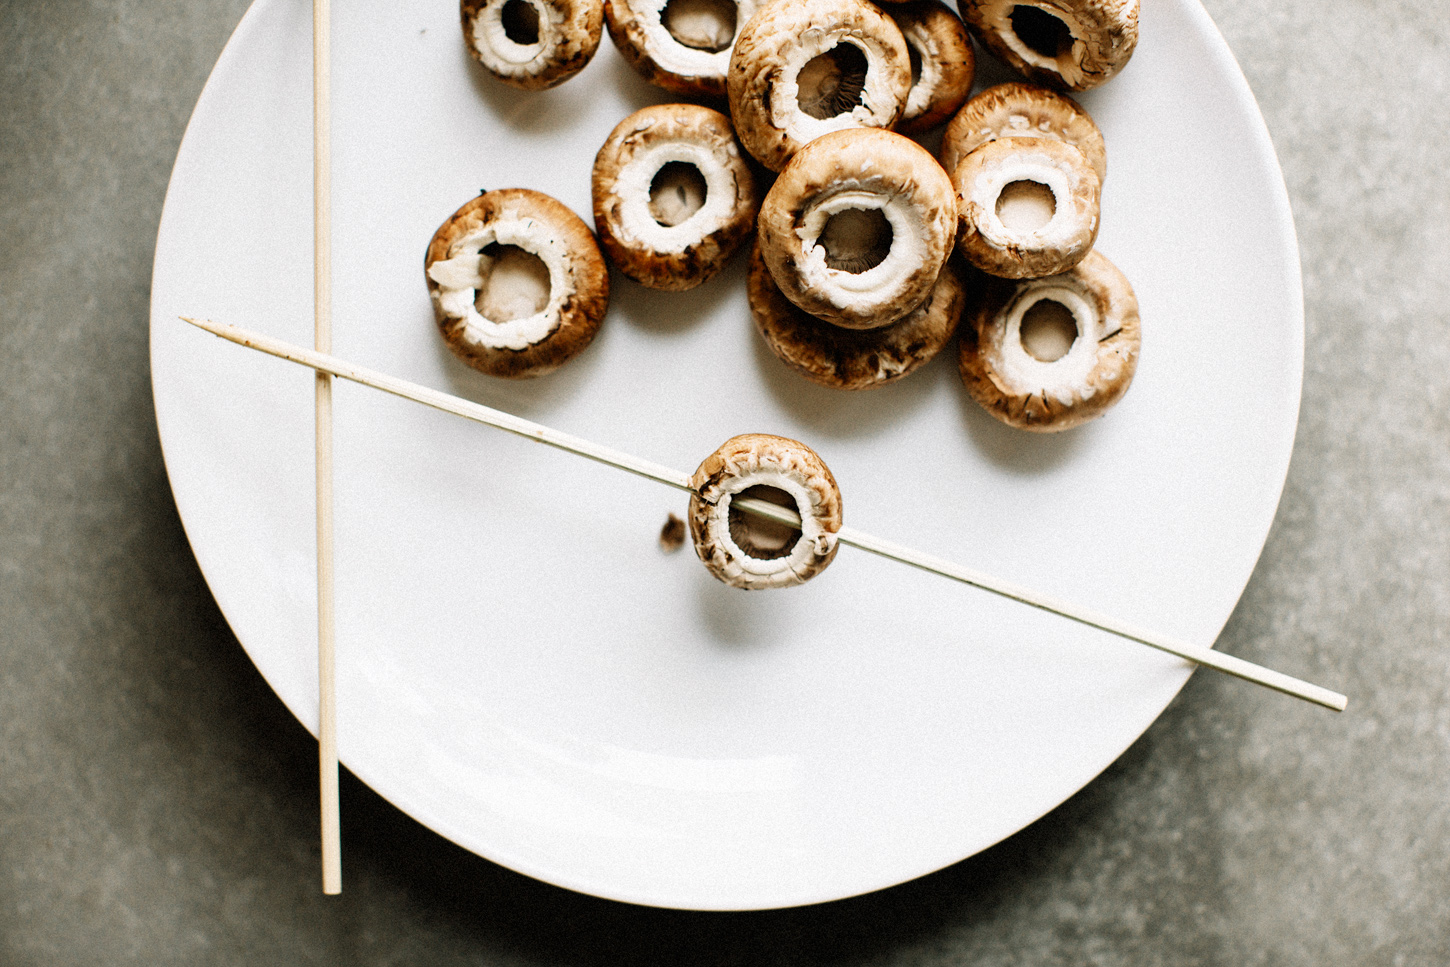 Mushrooms for Grilling